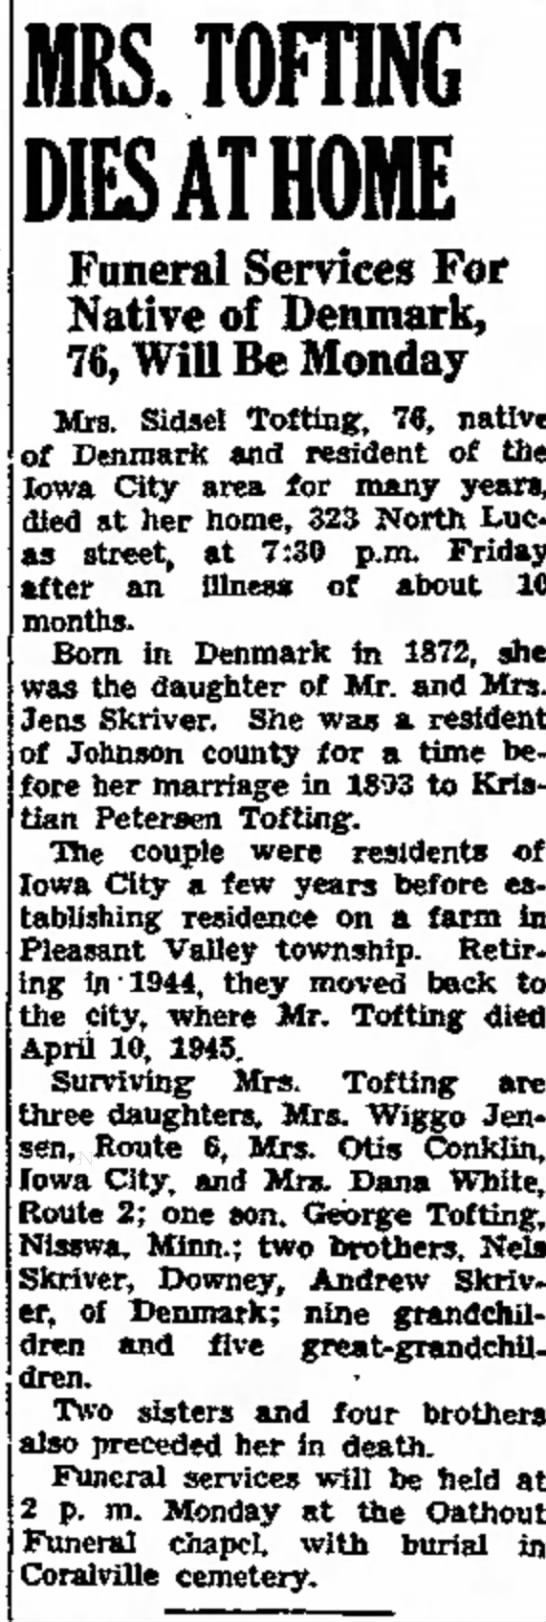 sidsel tofting sister in law obit -